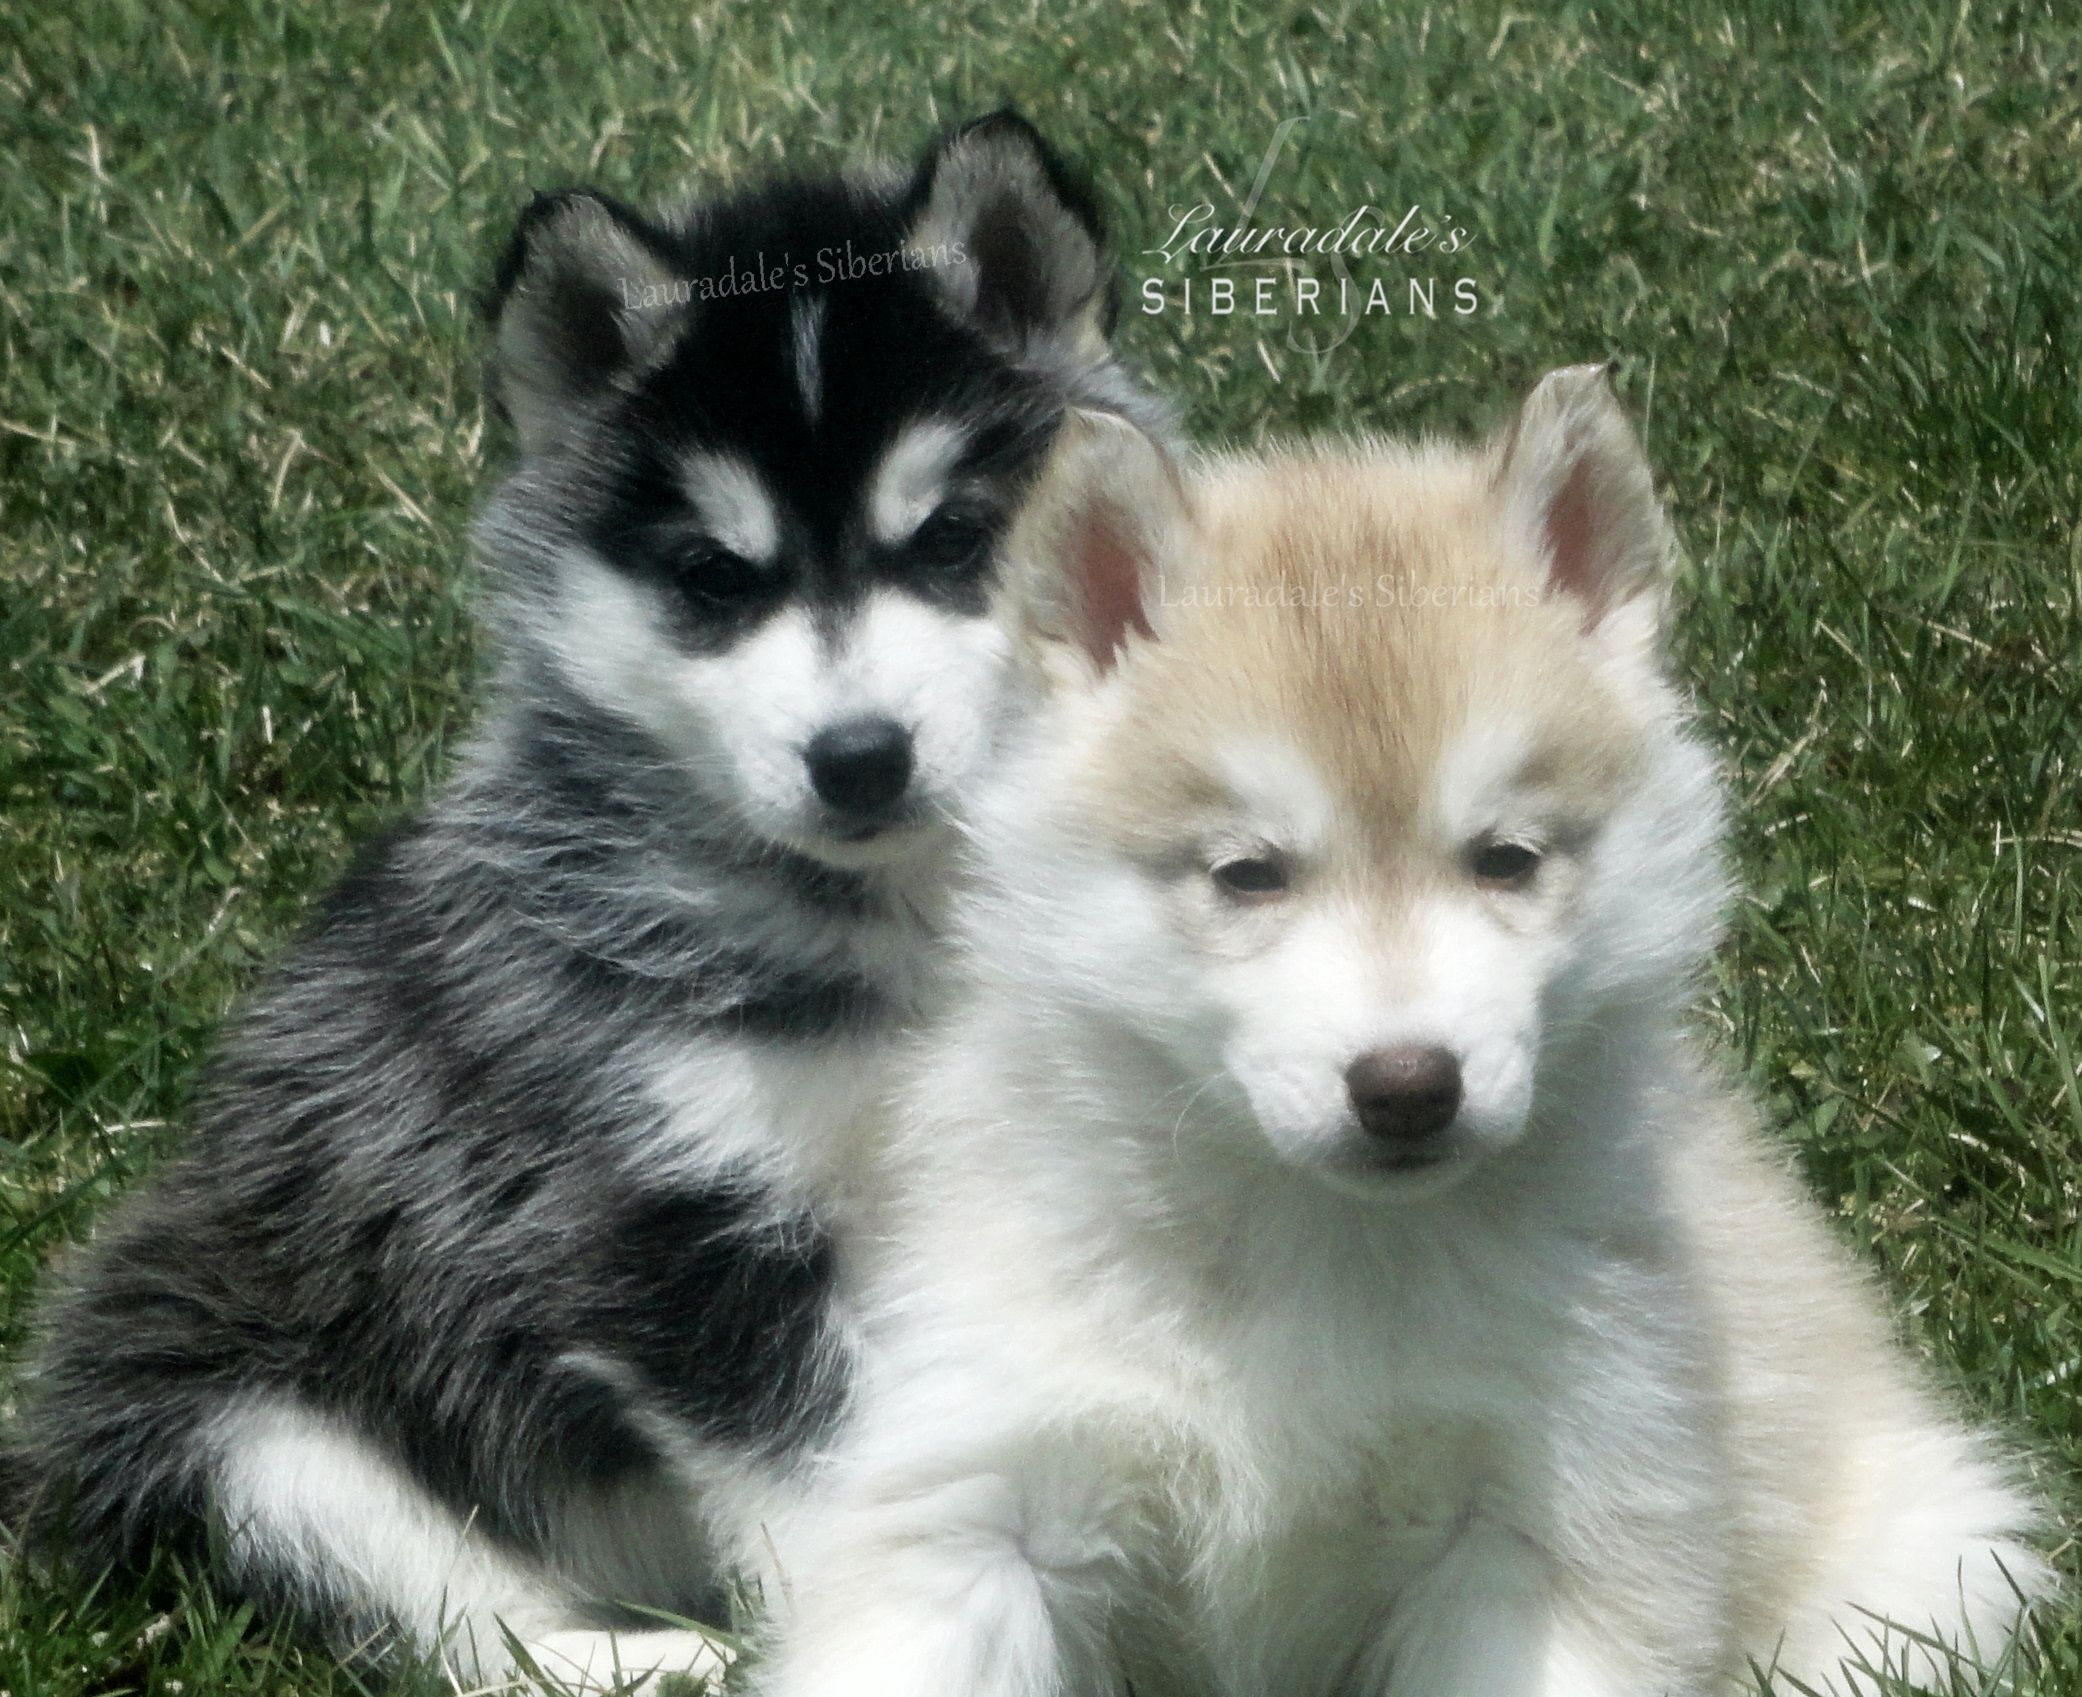 Two Siberian Husky Puppies 2 Brothers Littermates Black